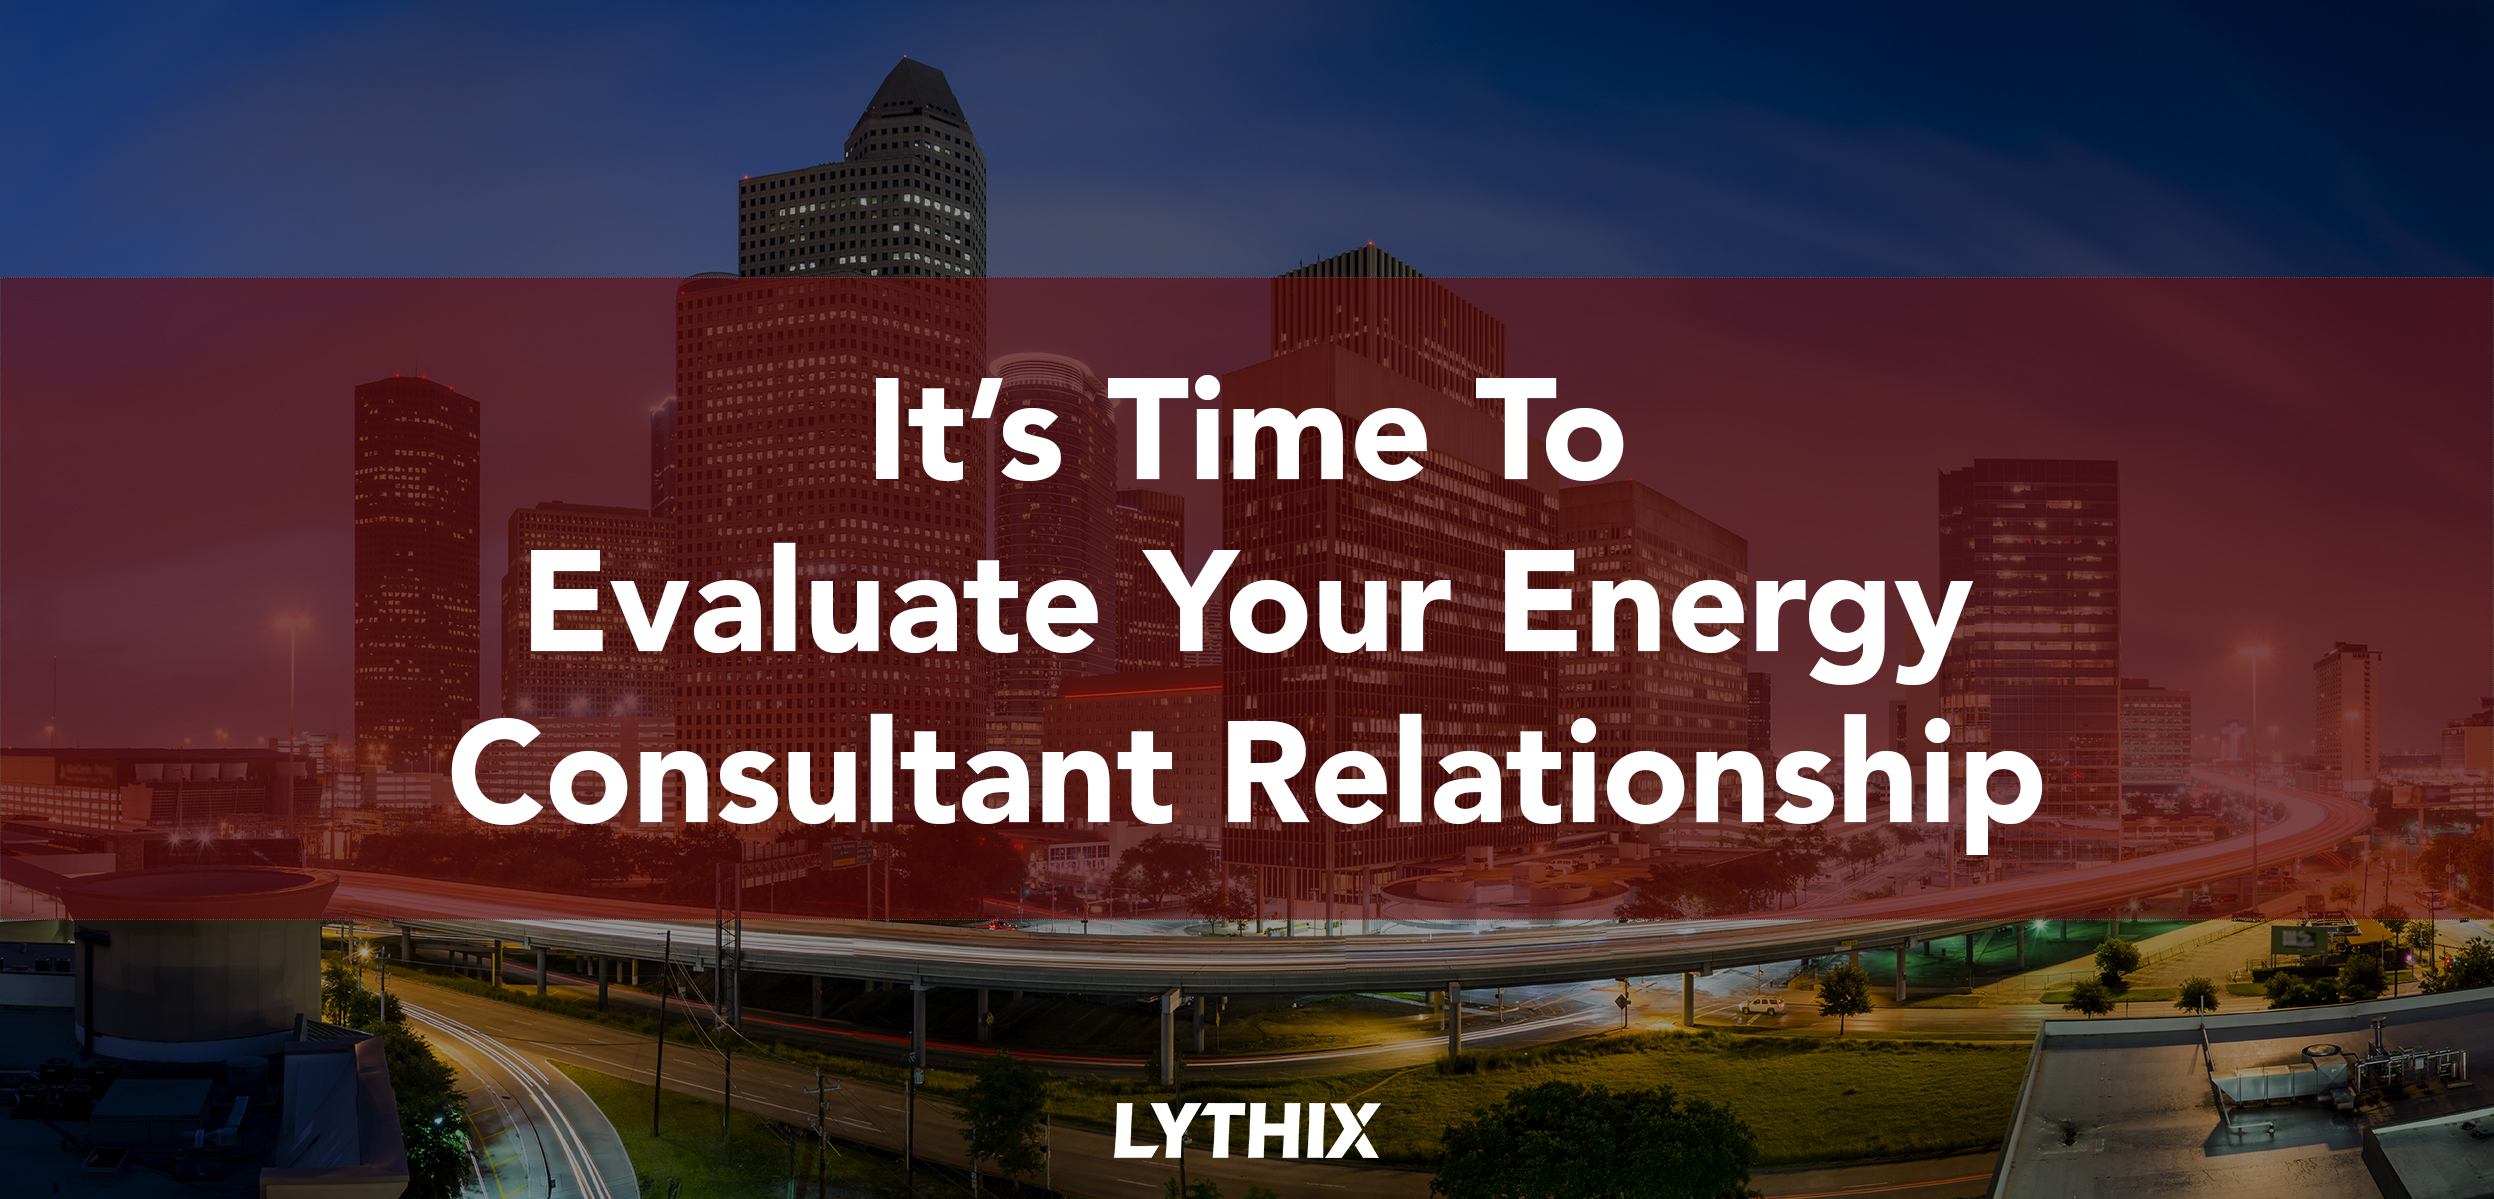 Now Is The Time To Evaluate Your Energy Consultant Relationship